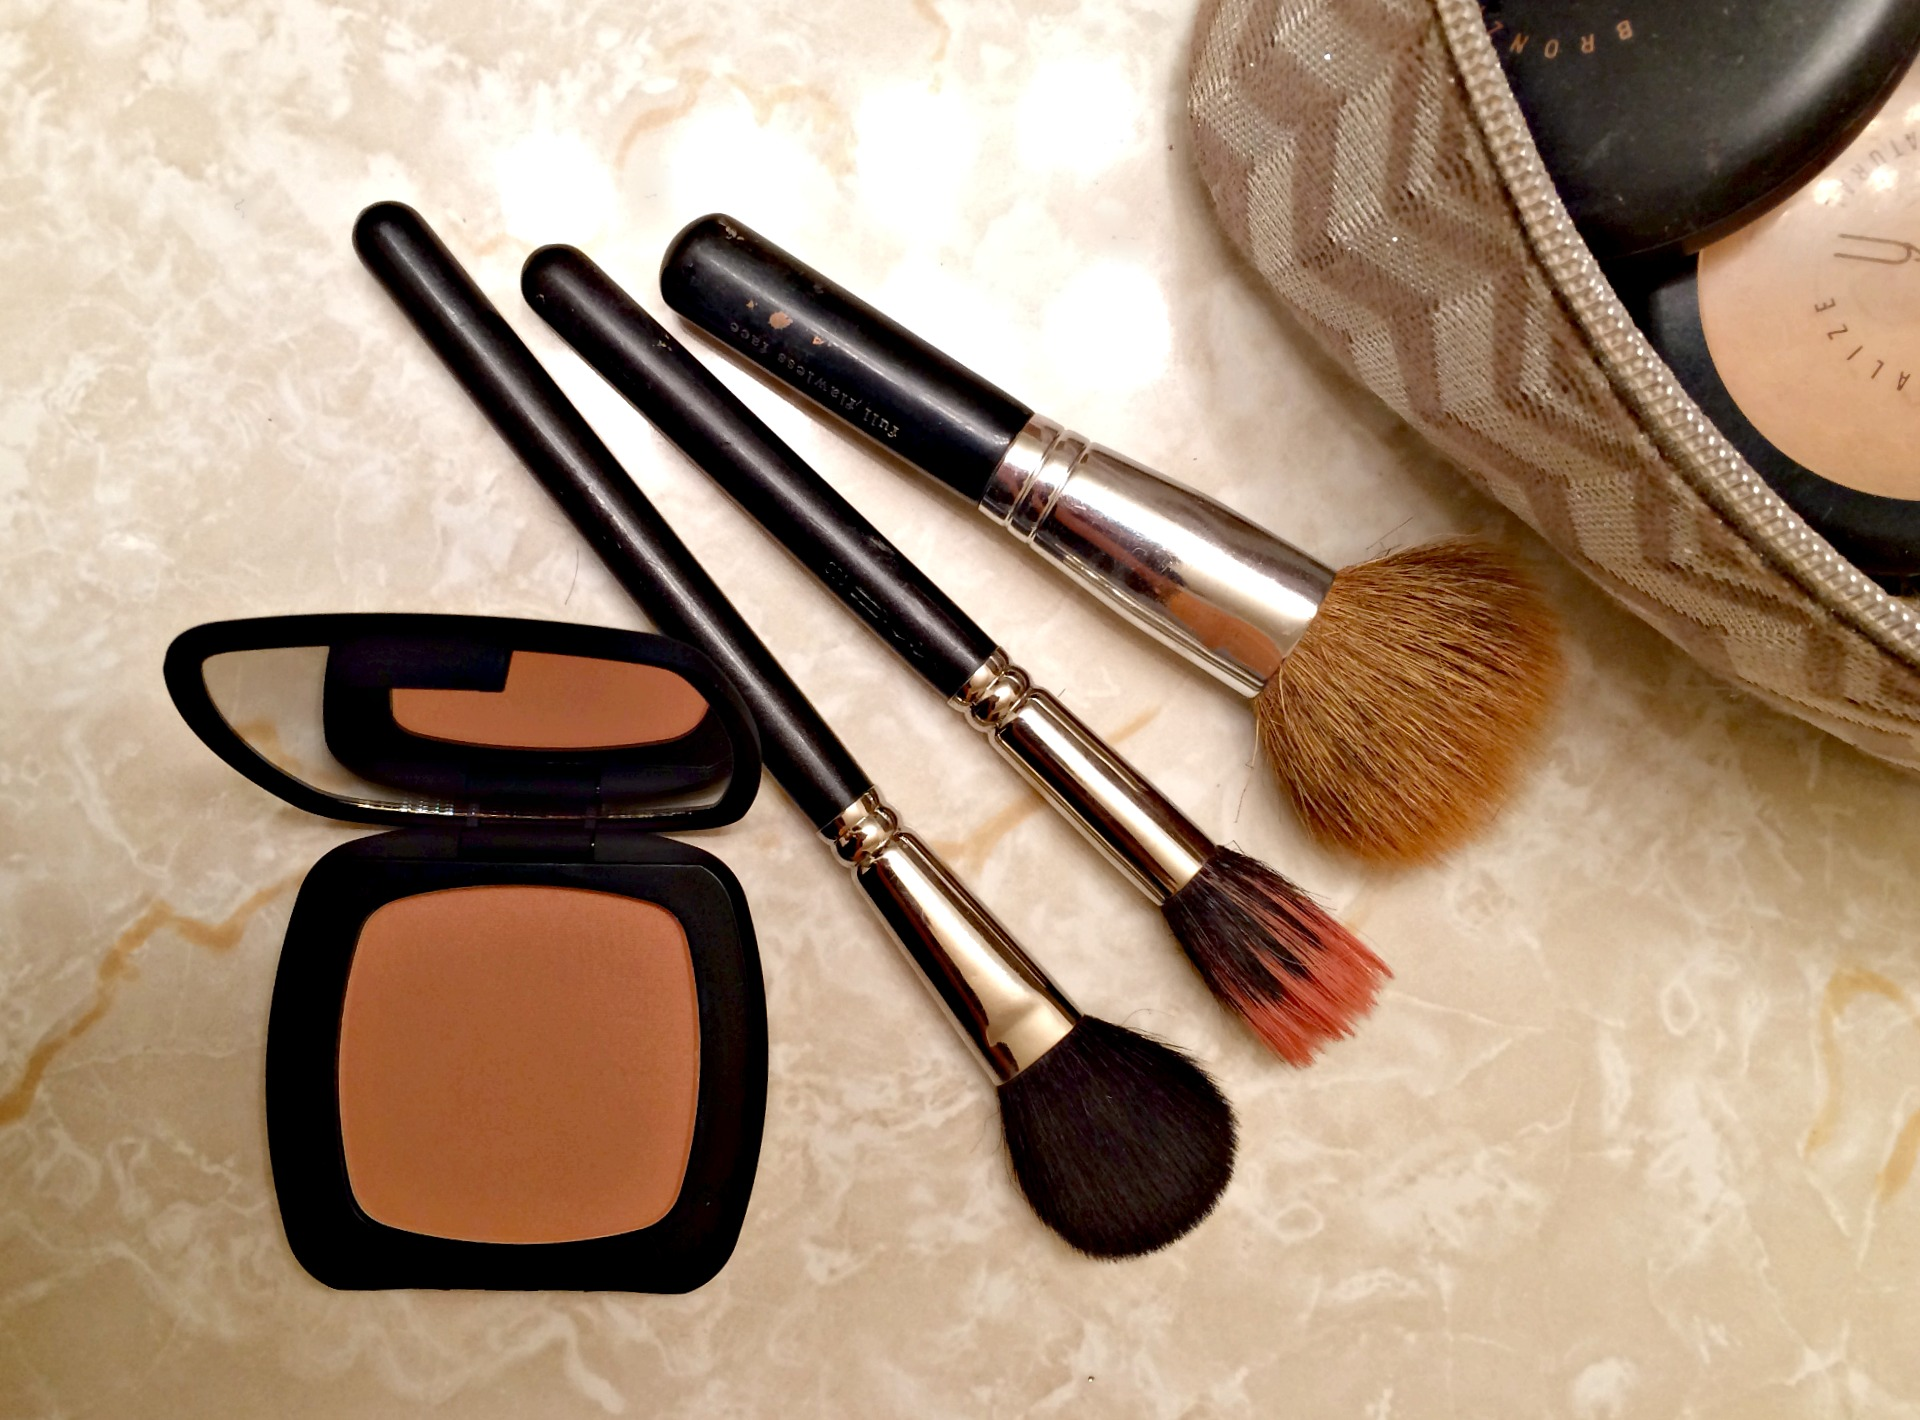 bare minerals bronzer and brushes